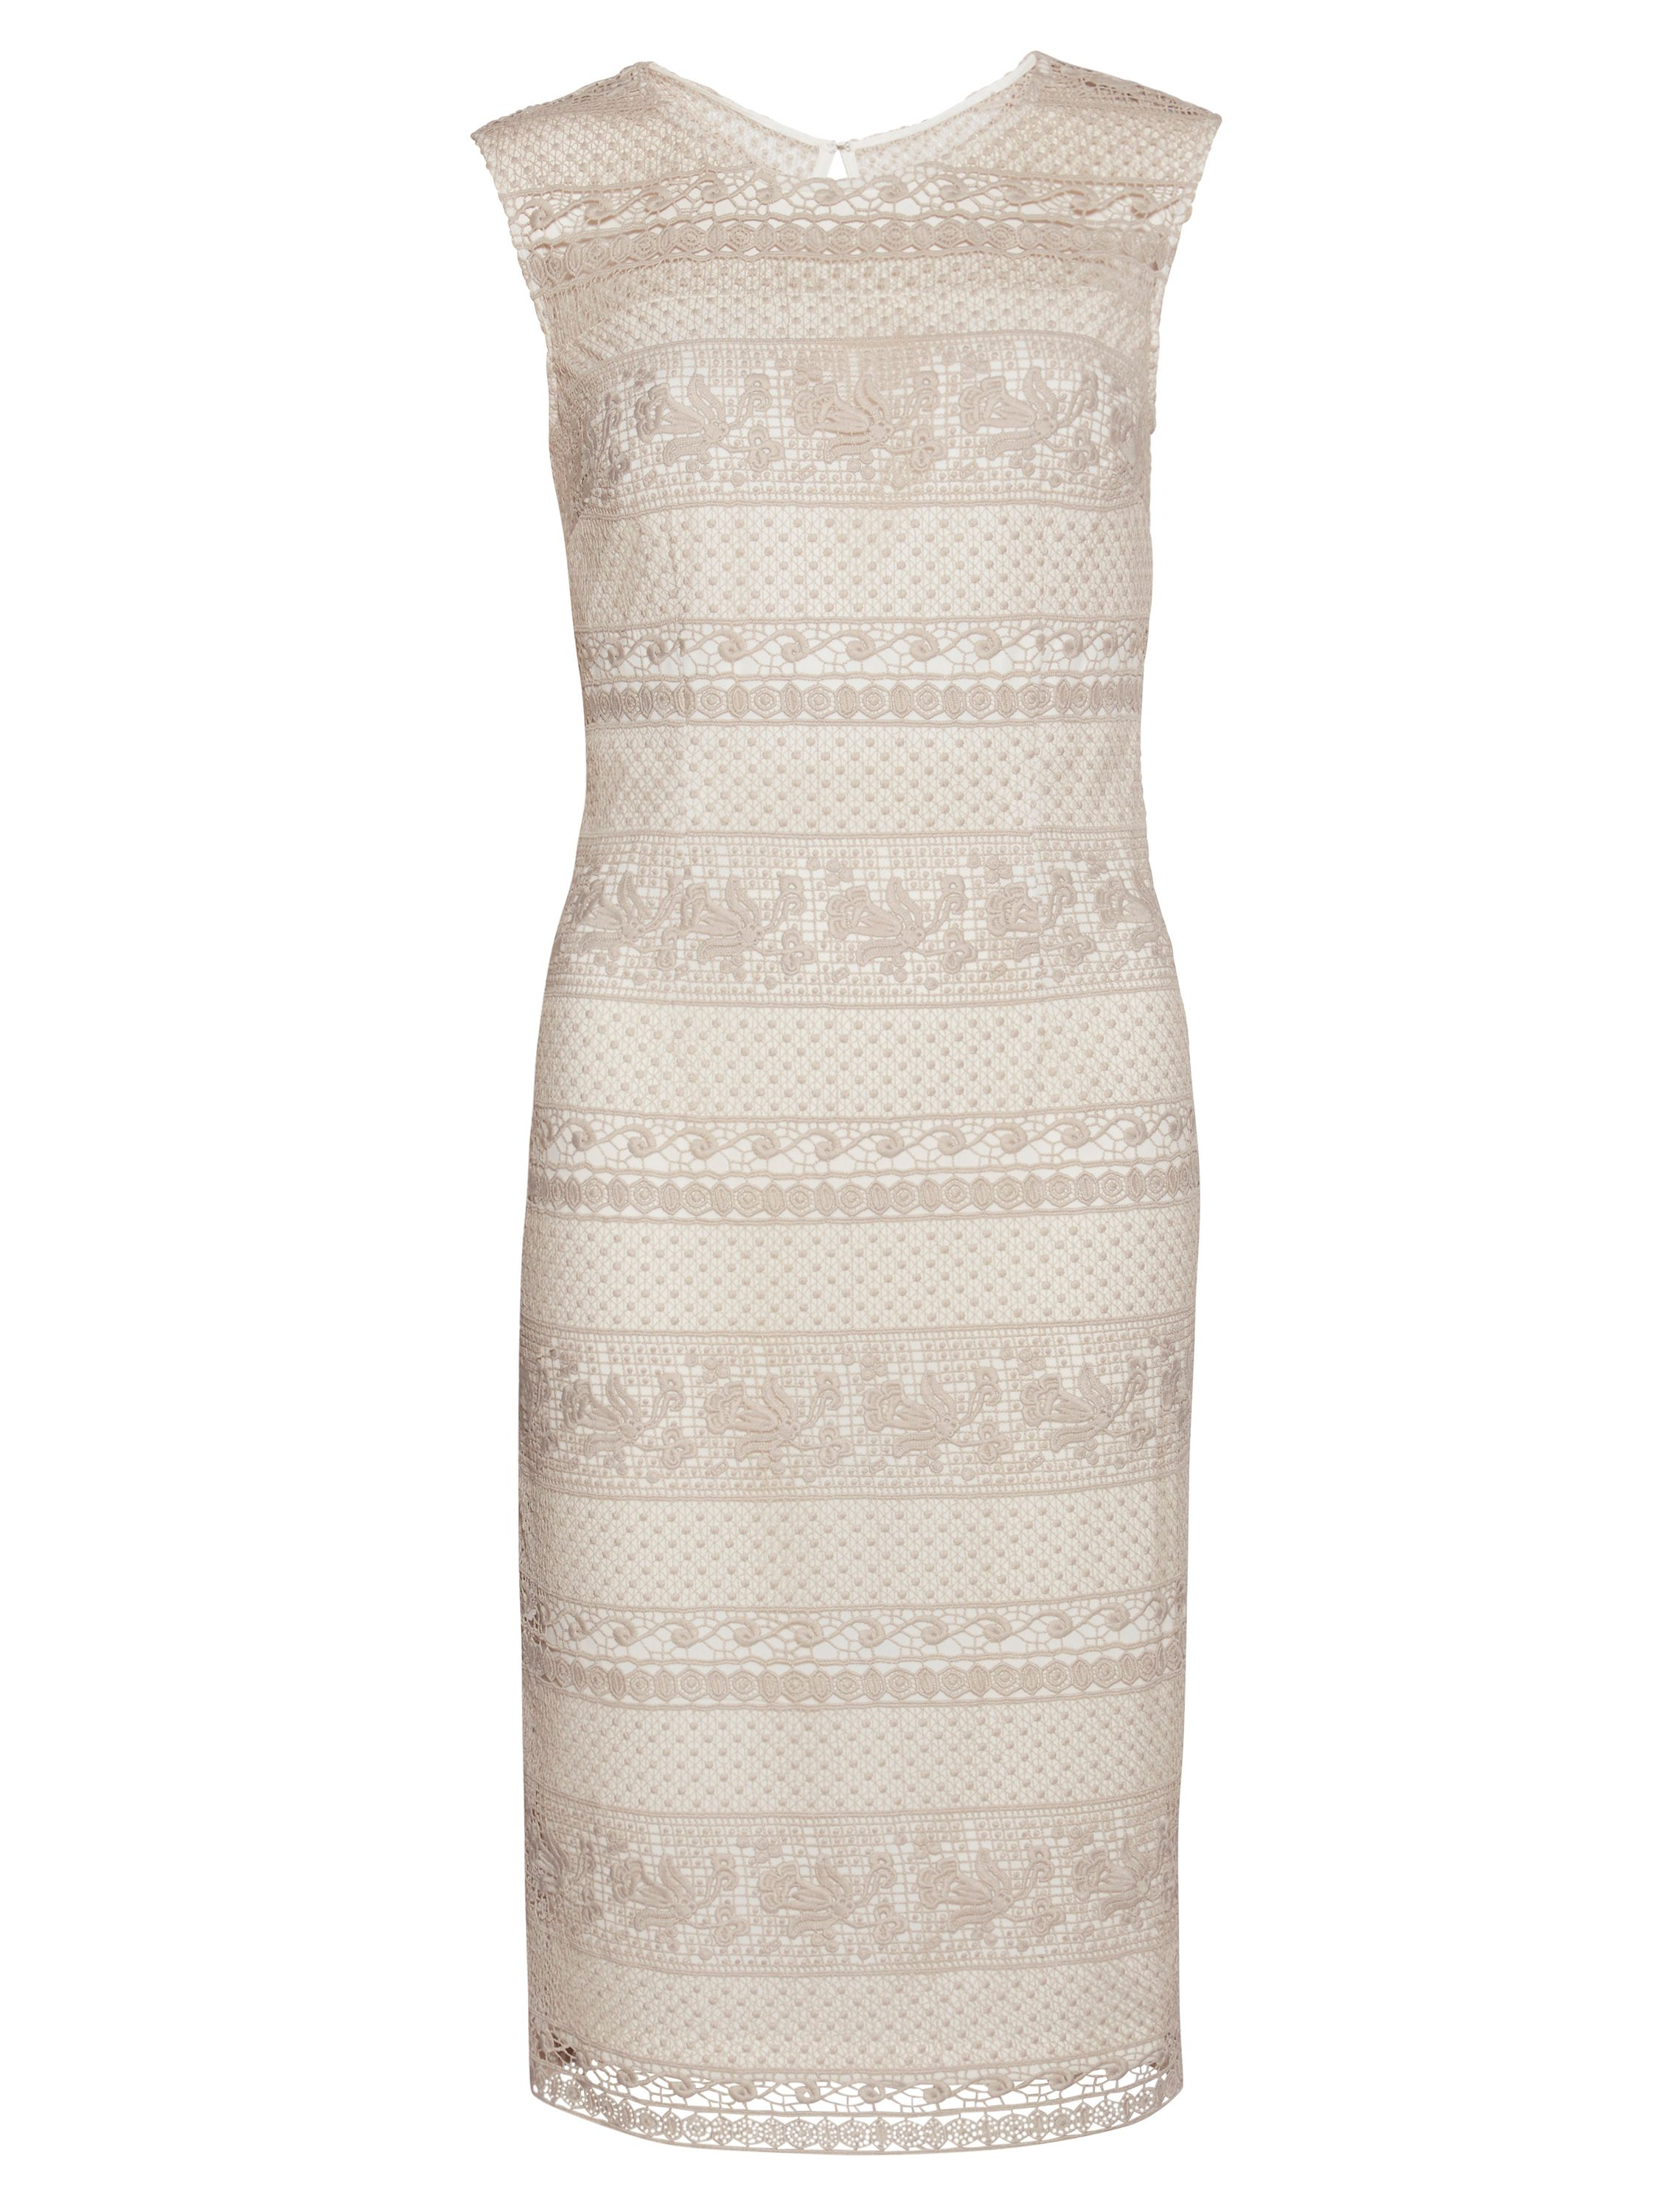 Gina Bacconi Multi Open Panel Embroidery Dress, White